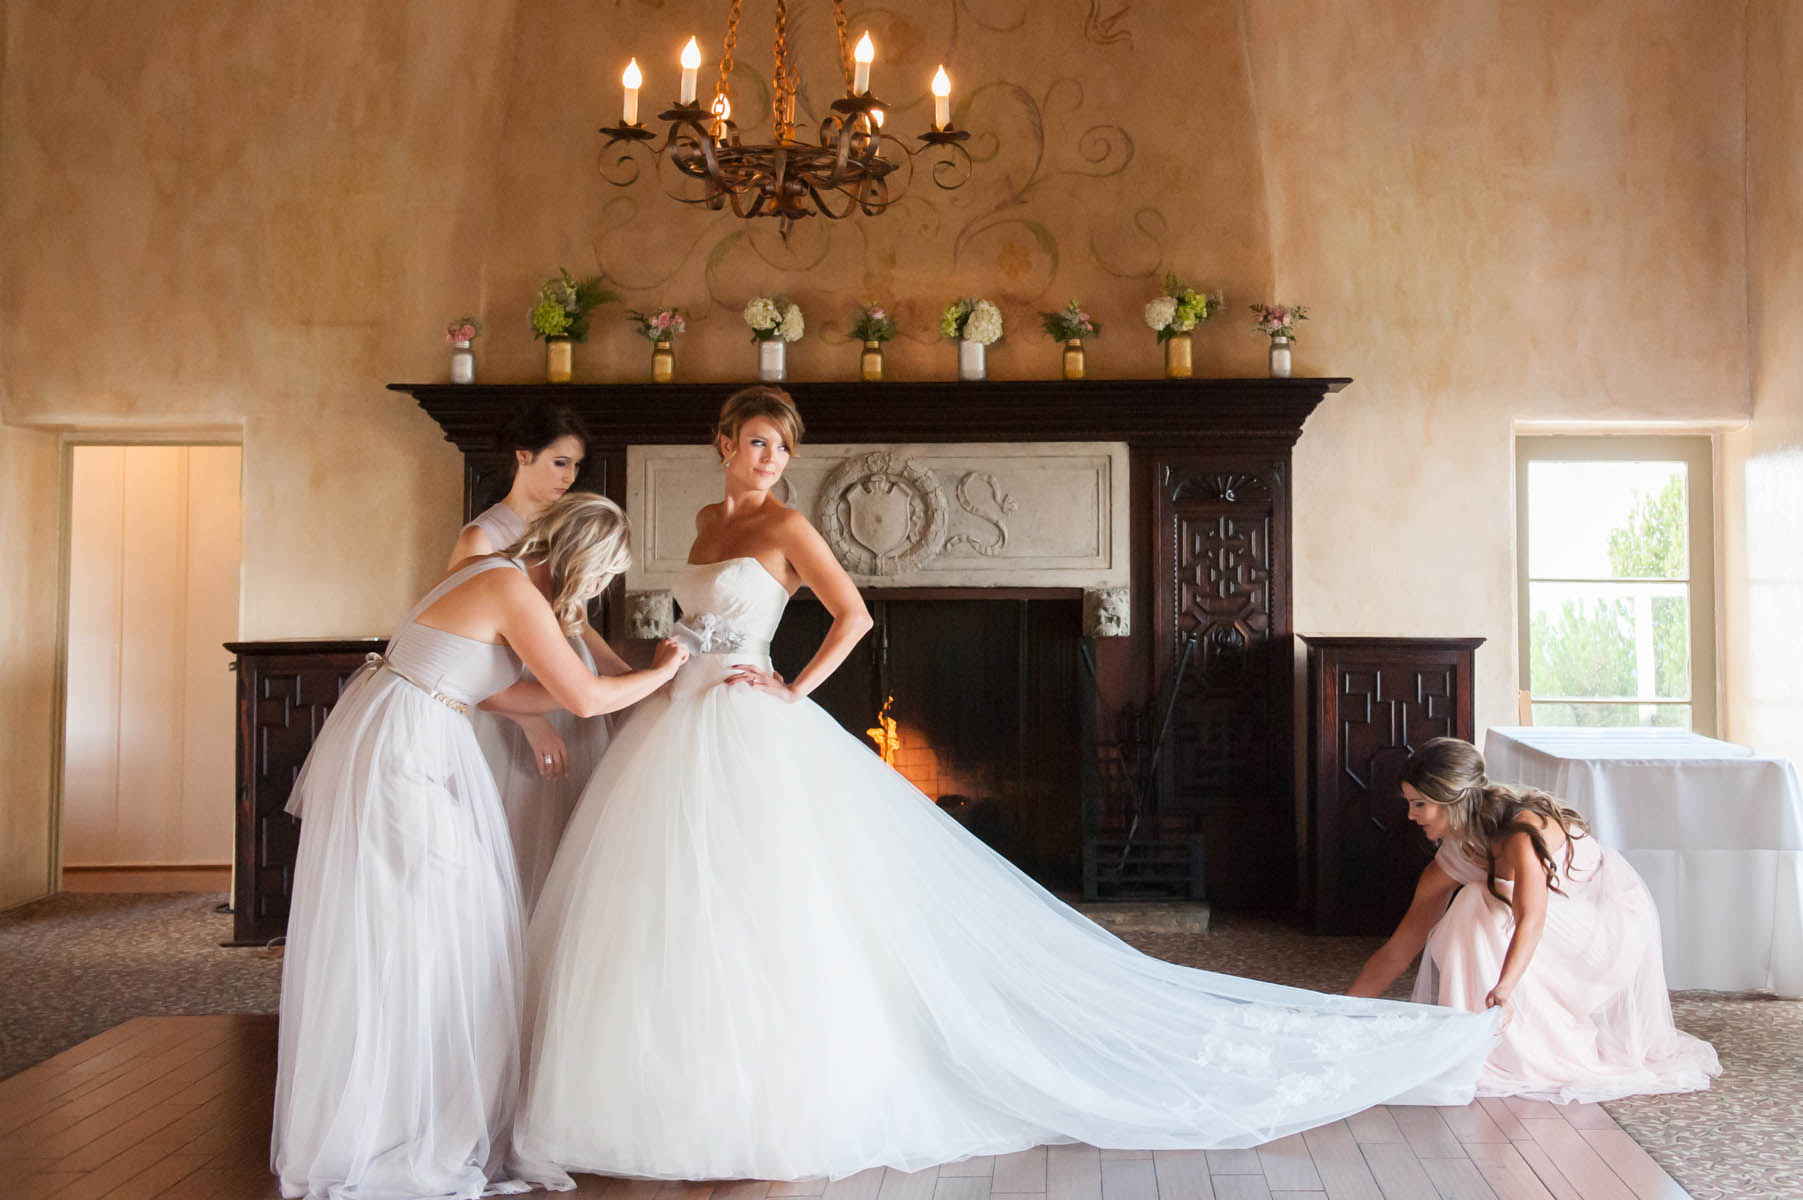 The bridesmaids help to smooth out the long train of the white wedding gown, as the bride looks over her shoulder. The room has a warm amber glow and there is a wood mantled fireplace in the background.